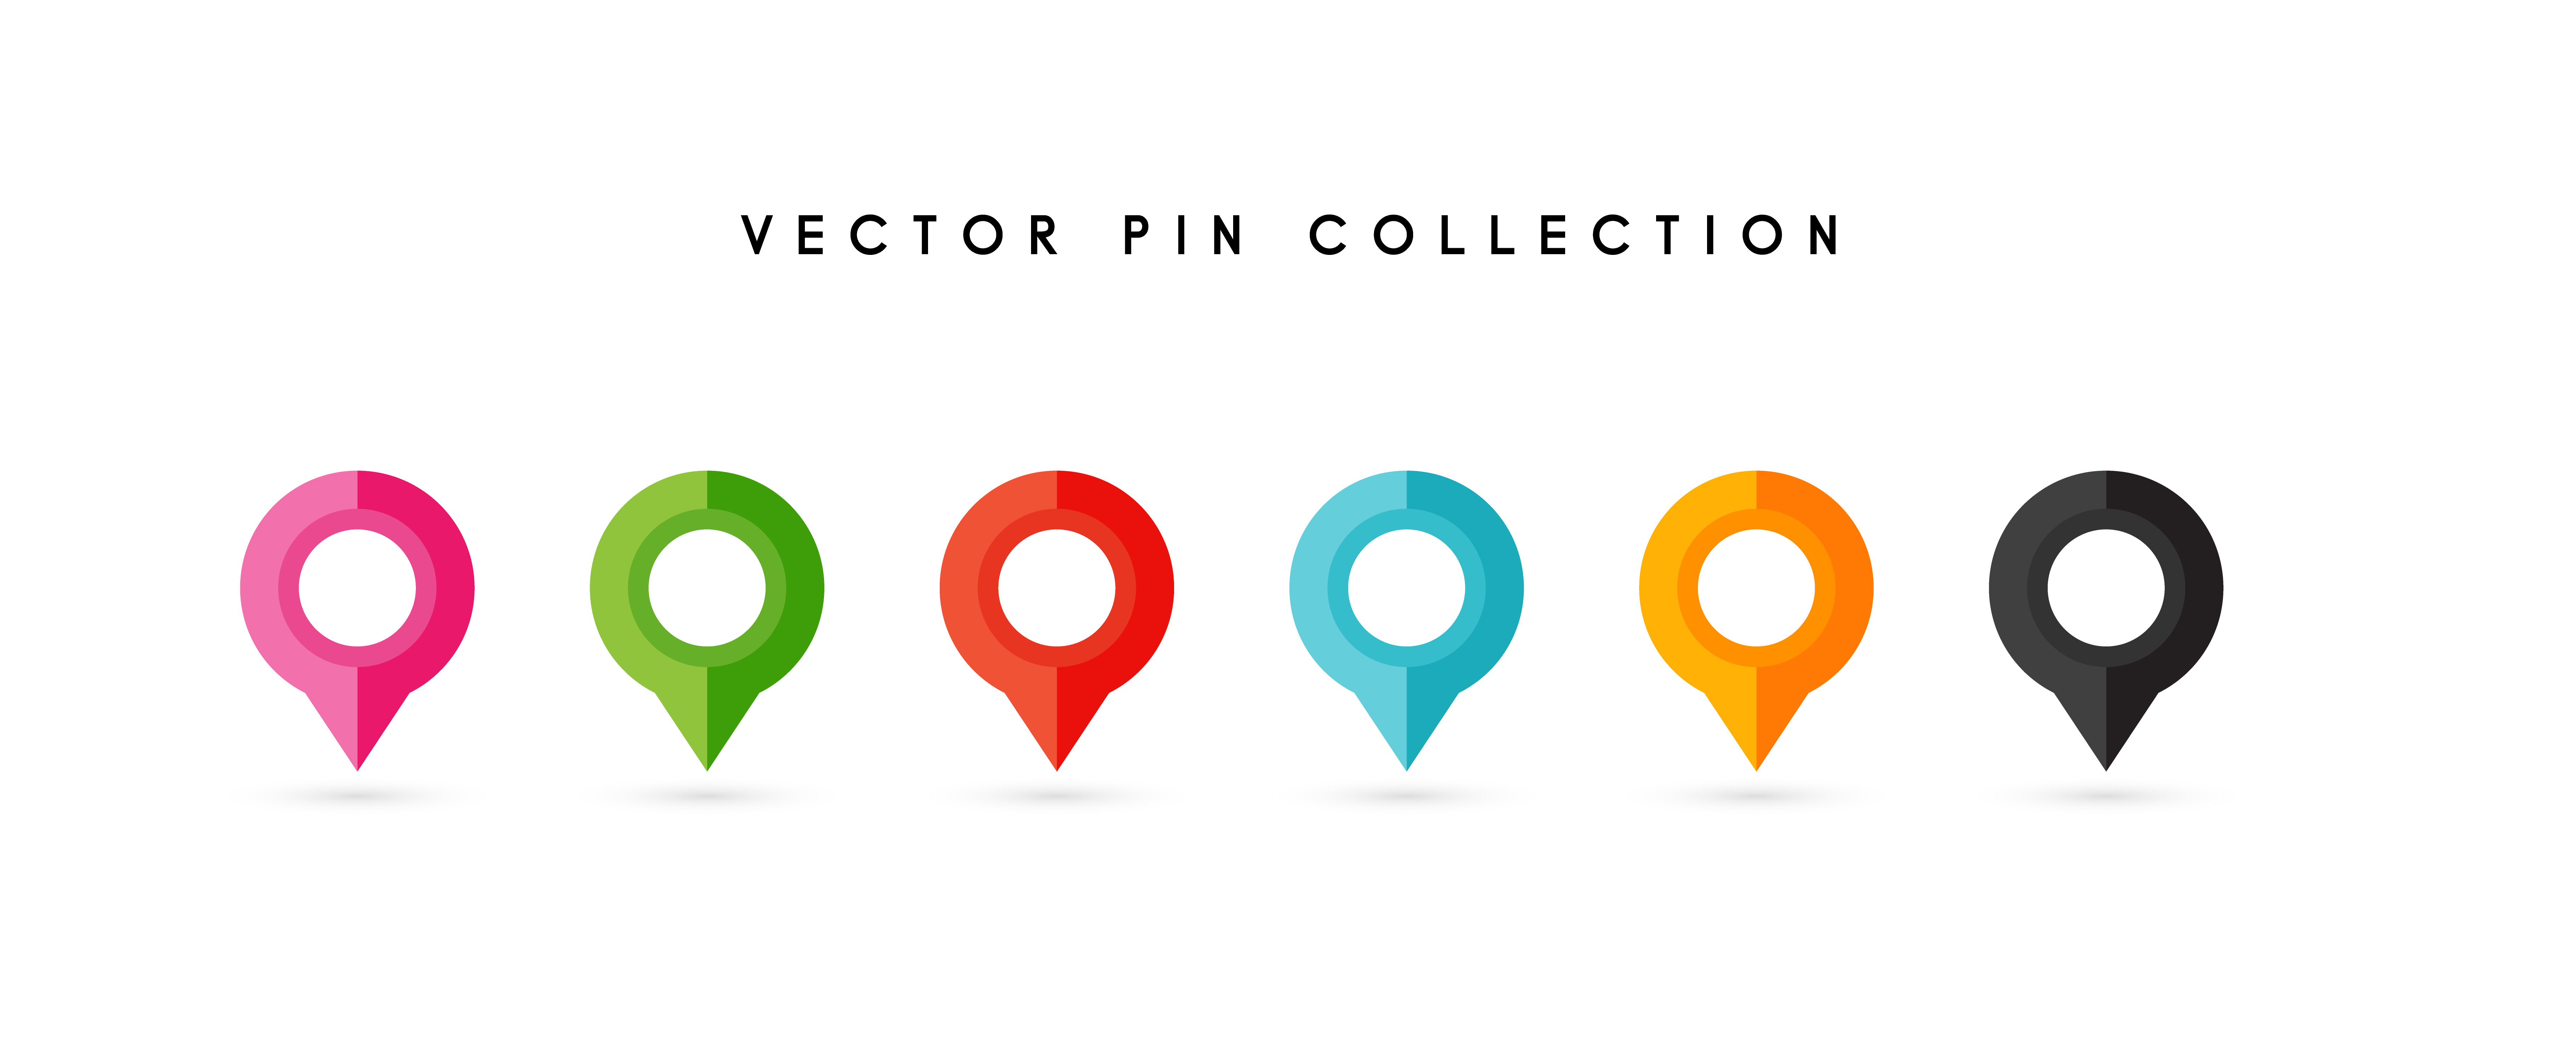 Location Position Icon Free Vector Graphic On Pixabay: Location Pin. Map Pin Flat Icon Vector Design.